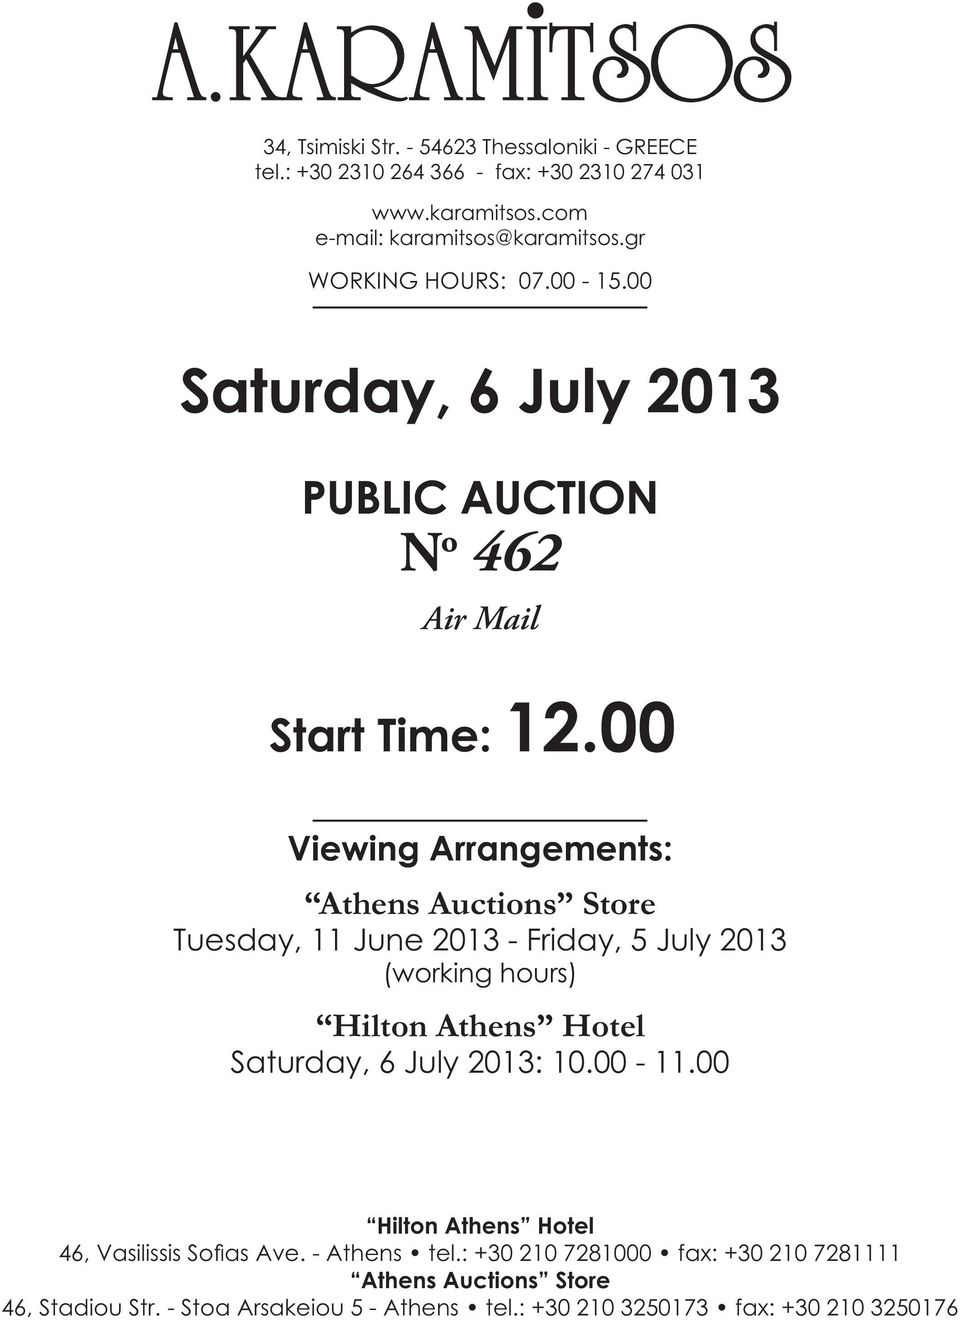 00 Viewing Arrangements: Athens Auctions Store Tuesday, 11 June 2013 - Friday, 5 July 2013 (working hours) Hilton Athens Hotel Saturday, 6 July 2013: 10.